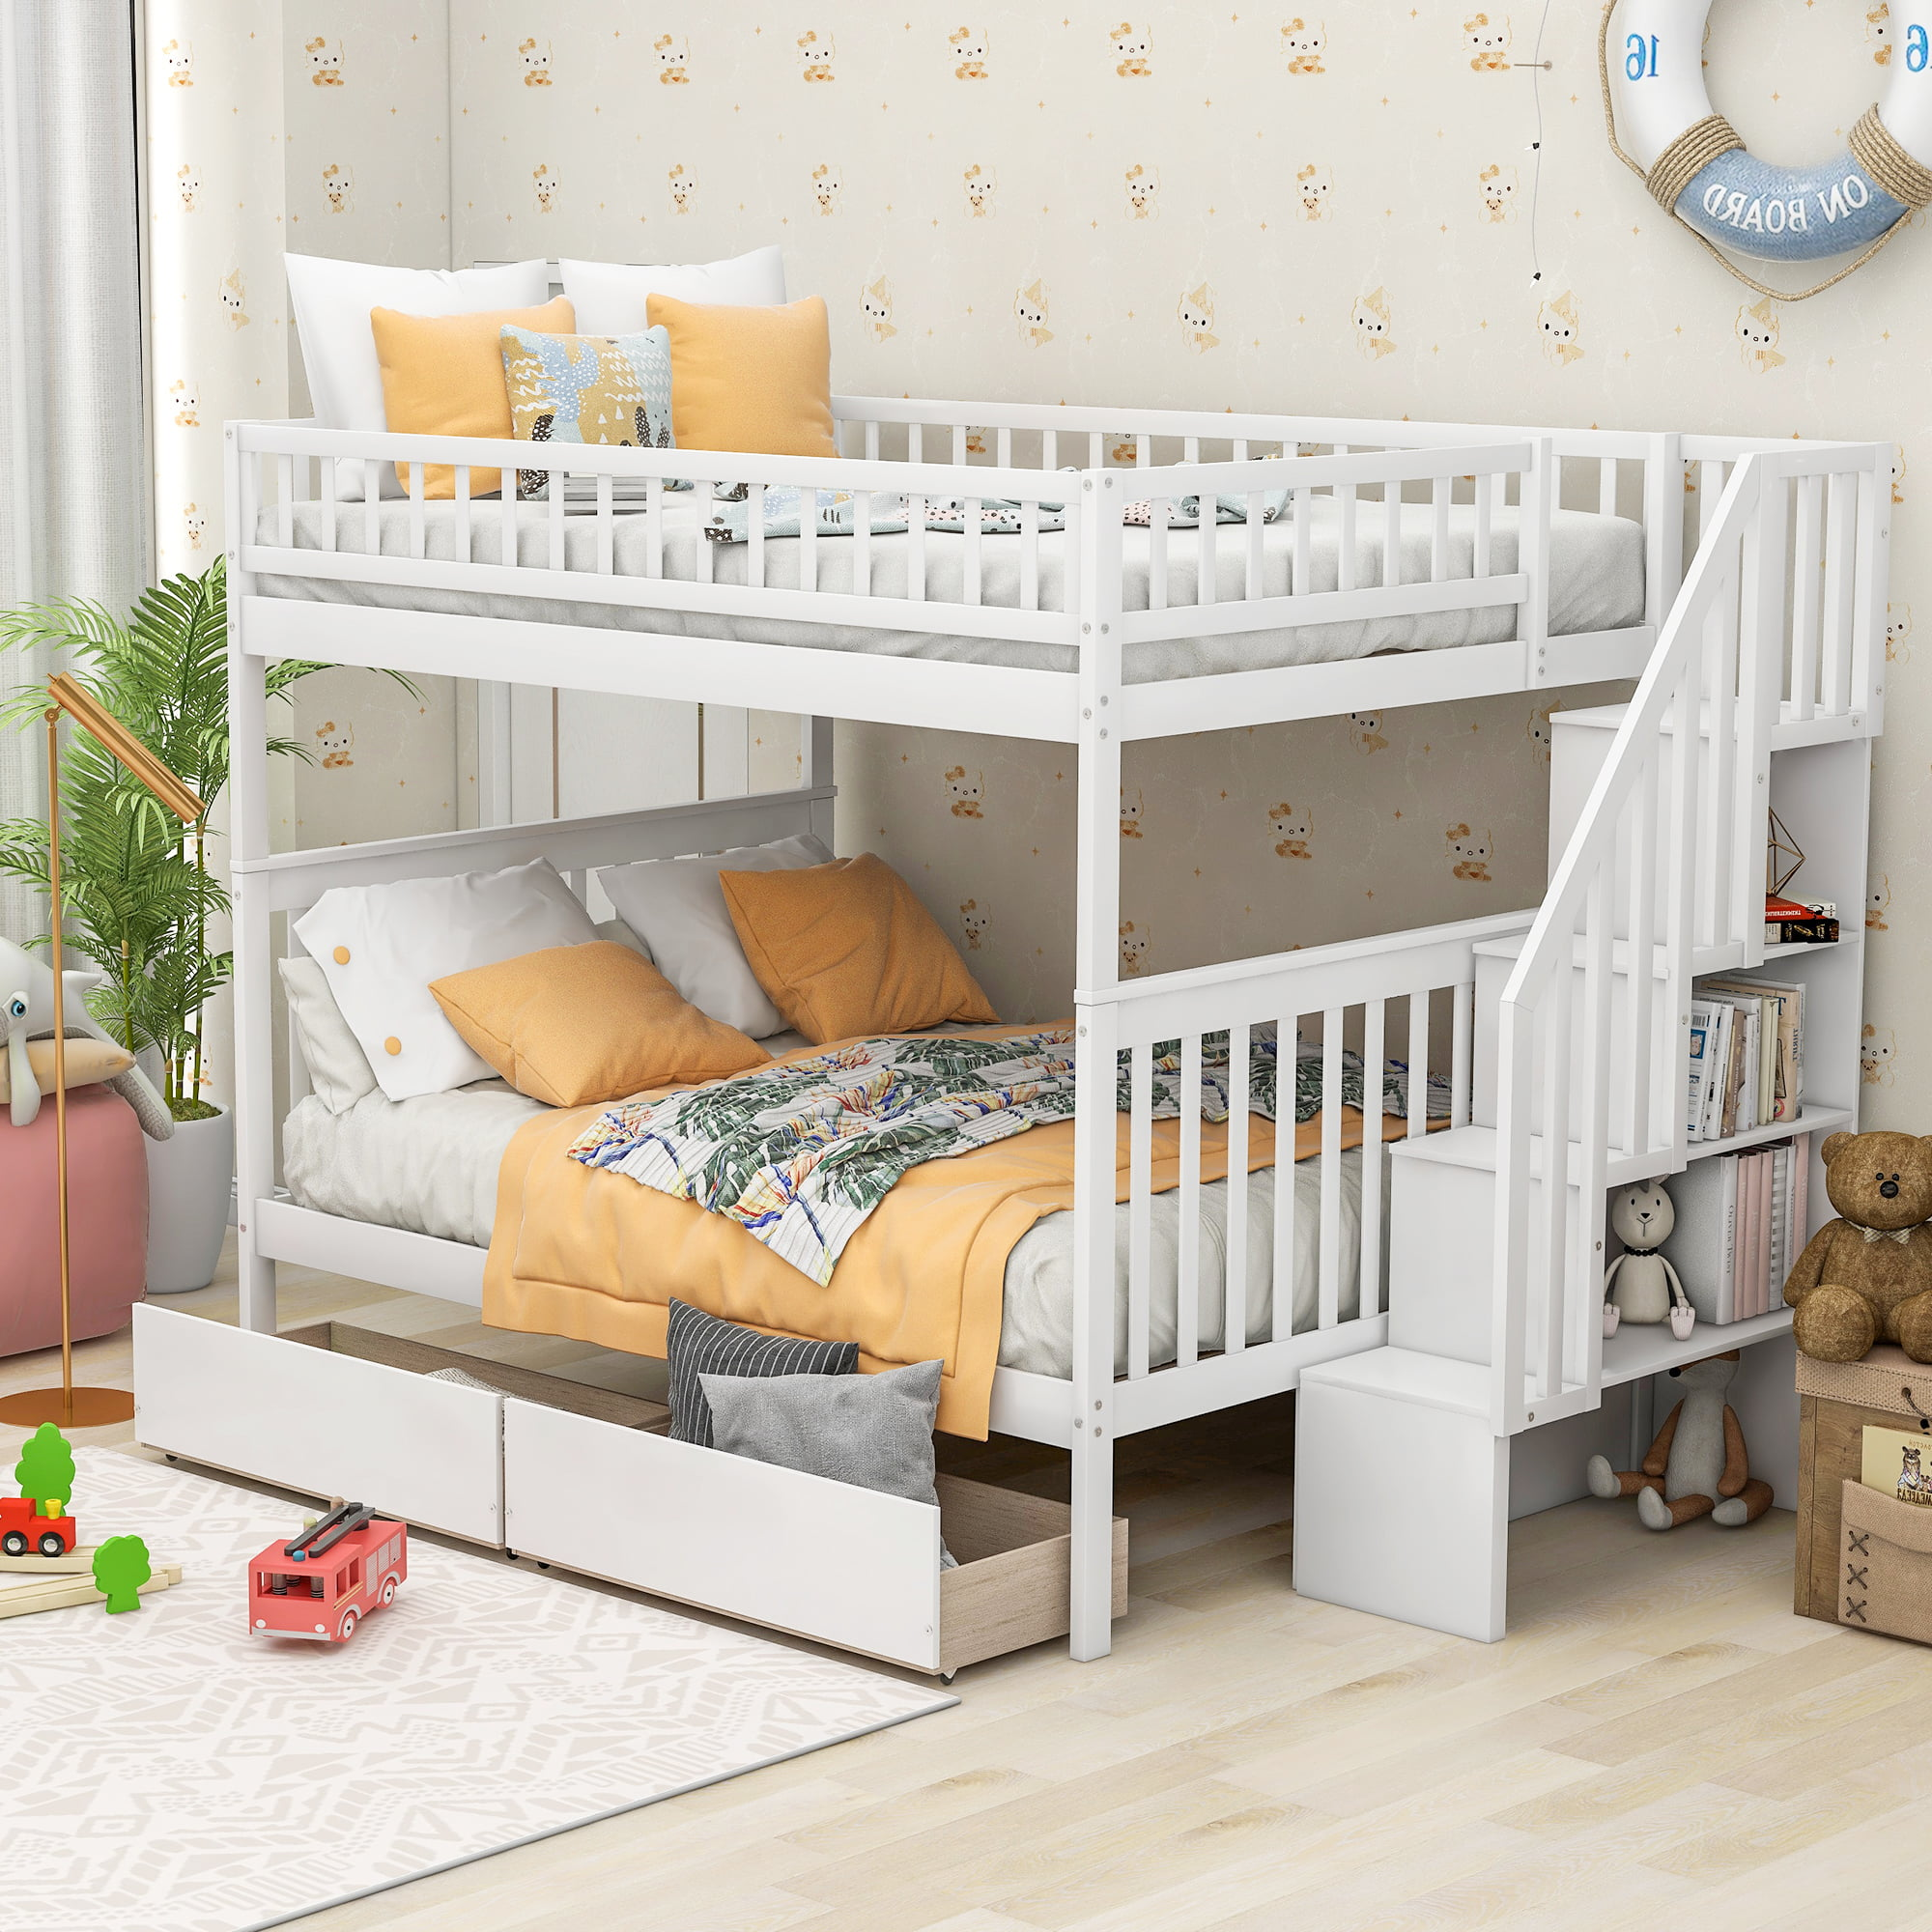 Picture of: Euroco Full Over Full Bunk Bed With Storage Shelves And 2 Under Storage Drawers Walmart Com Walmart Com